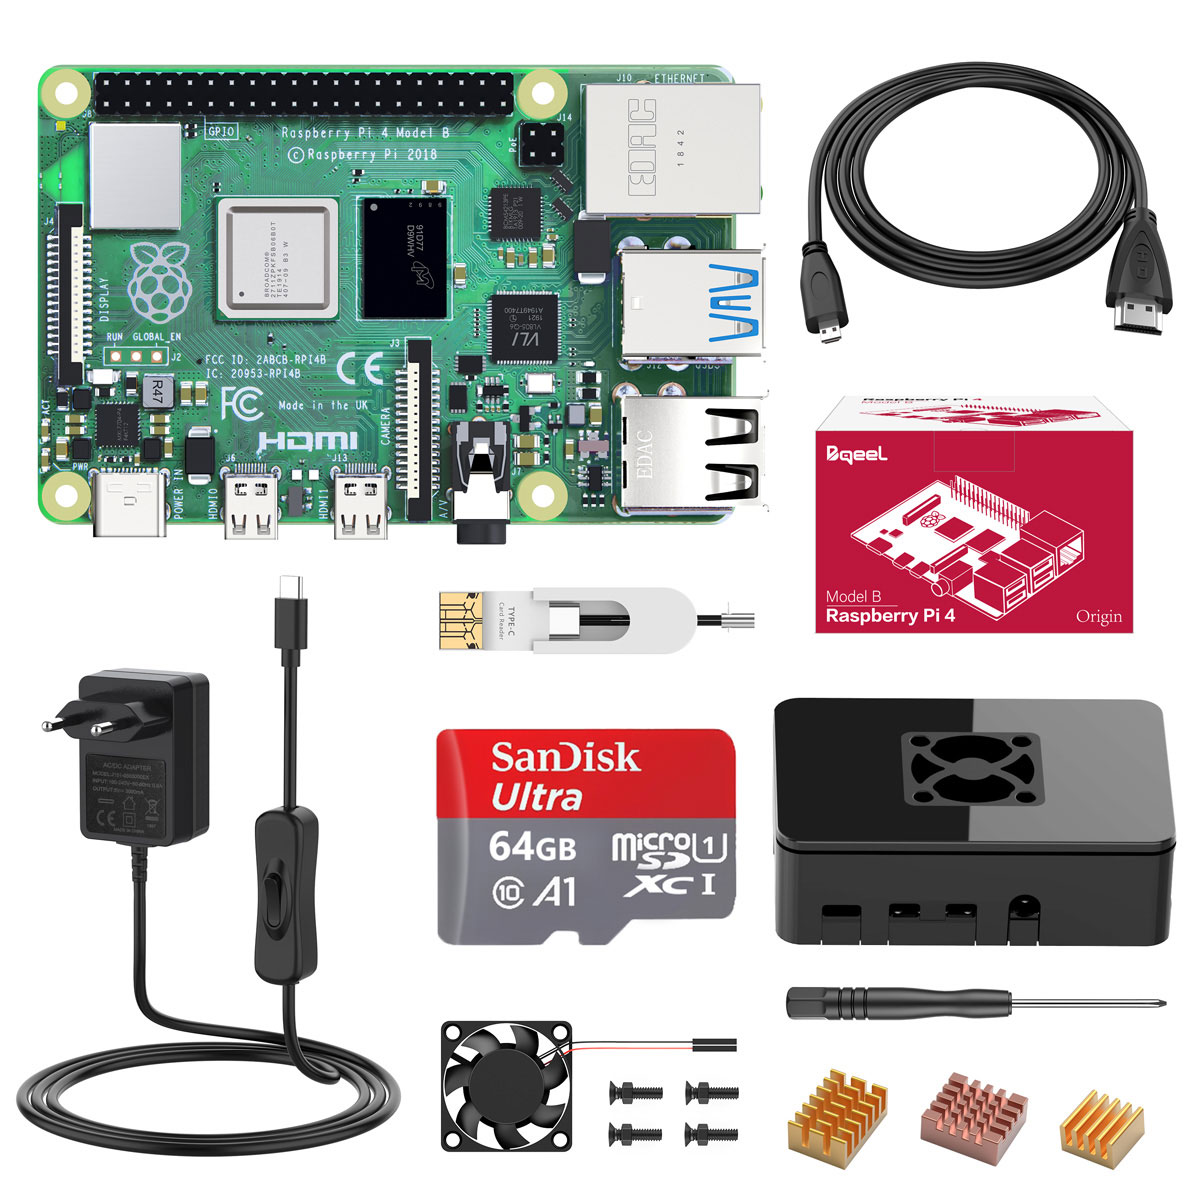 Bqeel Raspberry Pi 4 Model B 2GB Ultimate Kit with Quad-Core ARM-Cortex-A72 / 64GB Micro SD Card / Supports BT5.0 / Gigabit Ethernet / Dual Display 4K 60Hz / Upgraded for Raspberry Pi 3